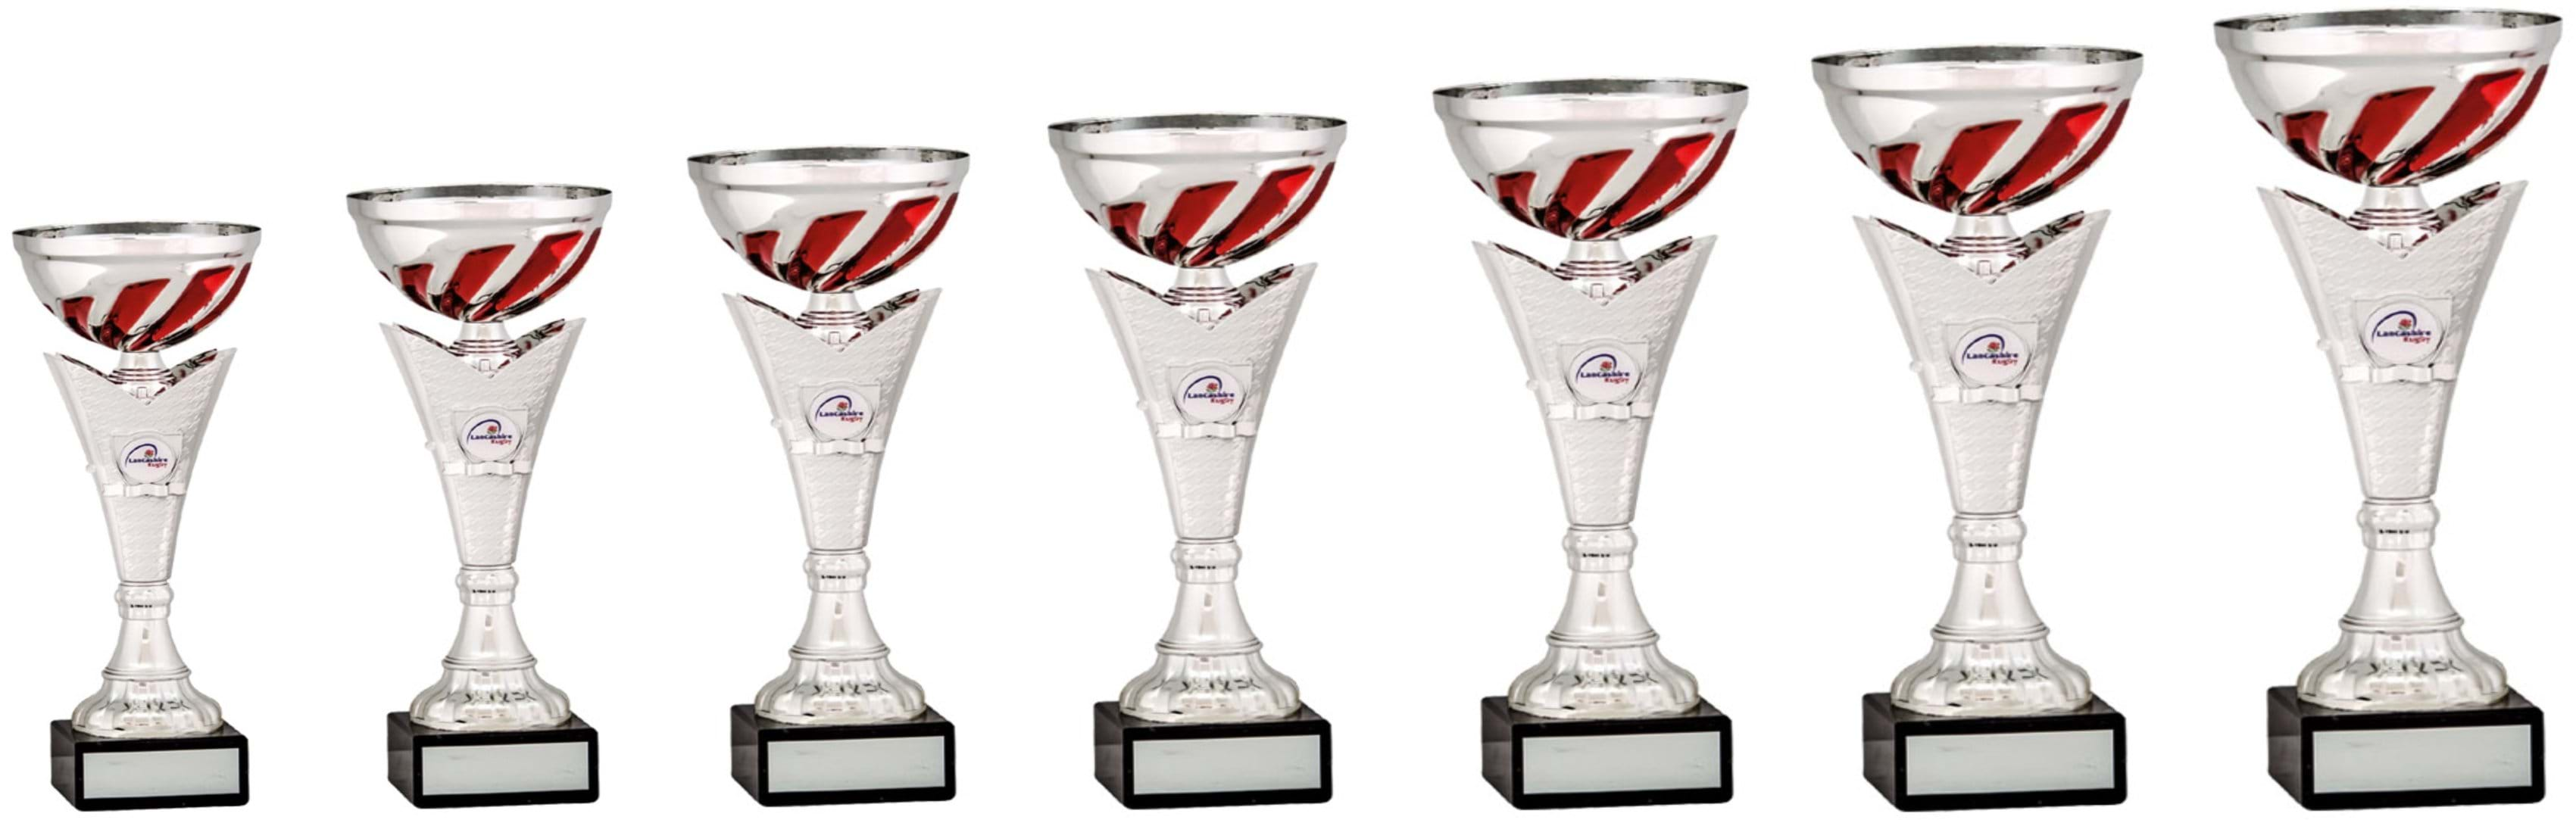 Silver Red Swirl Bowl Cups Stem 1918 Series